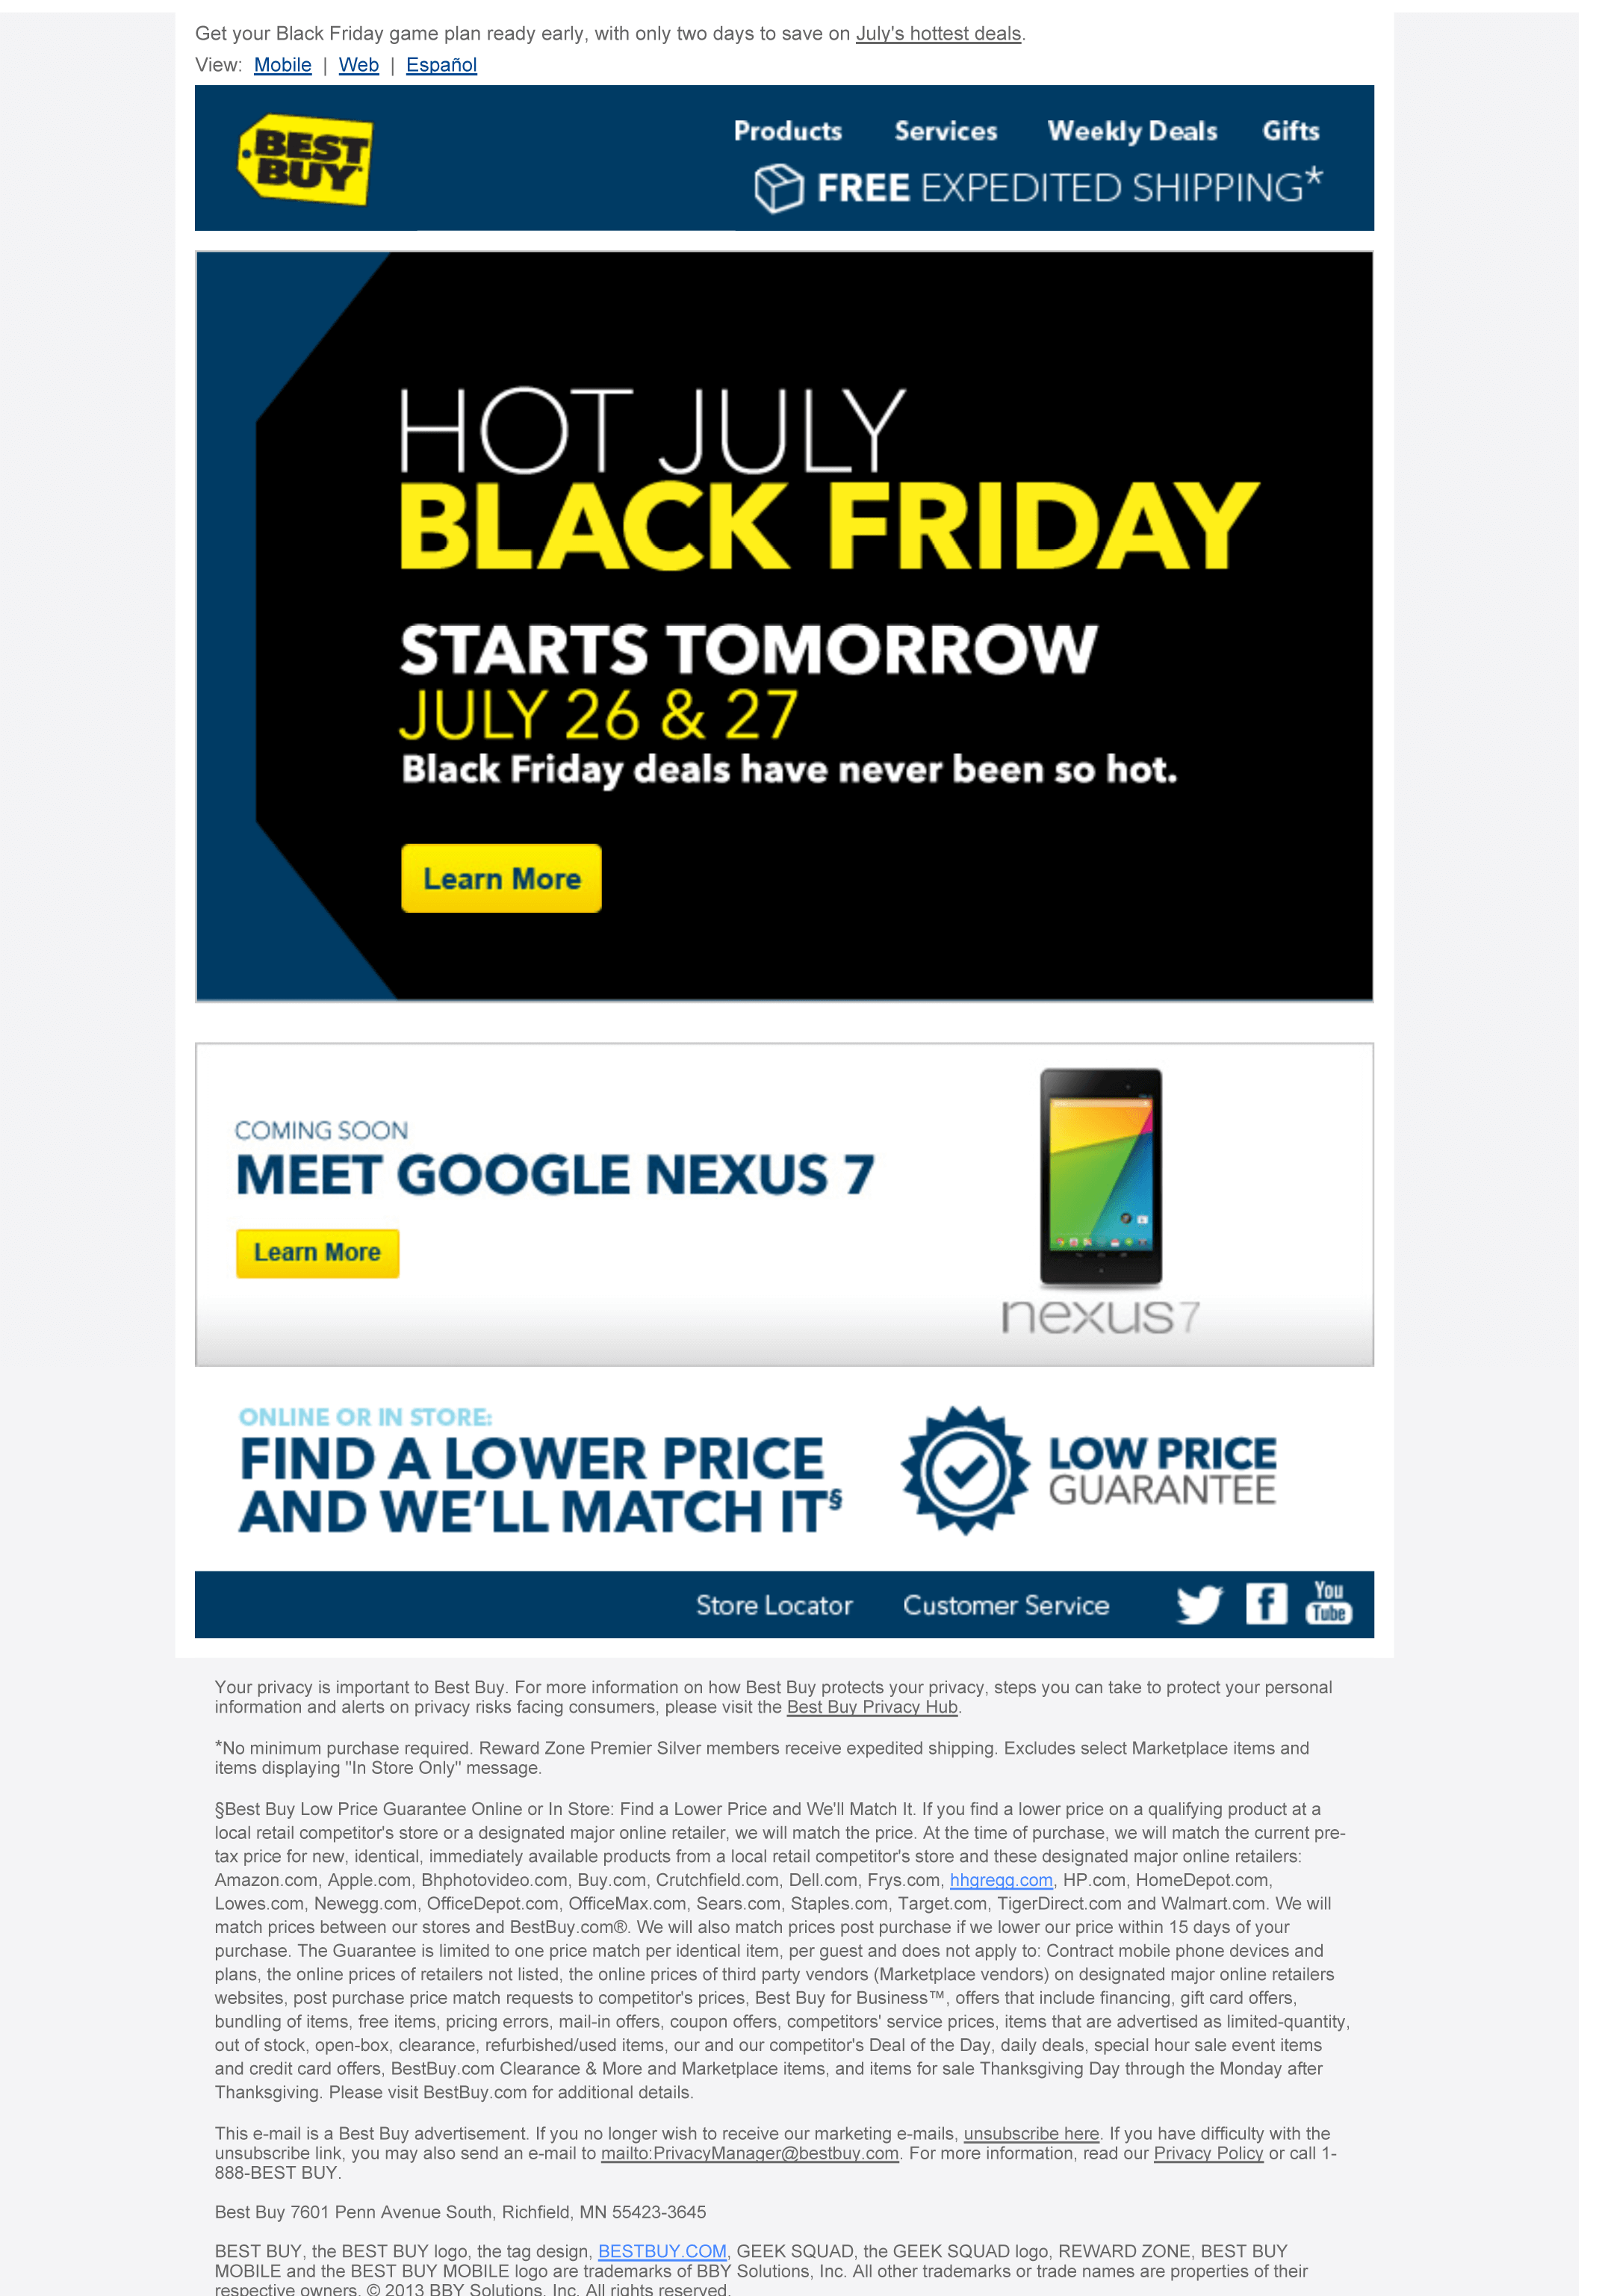 Best Buy - Black Friday